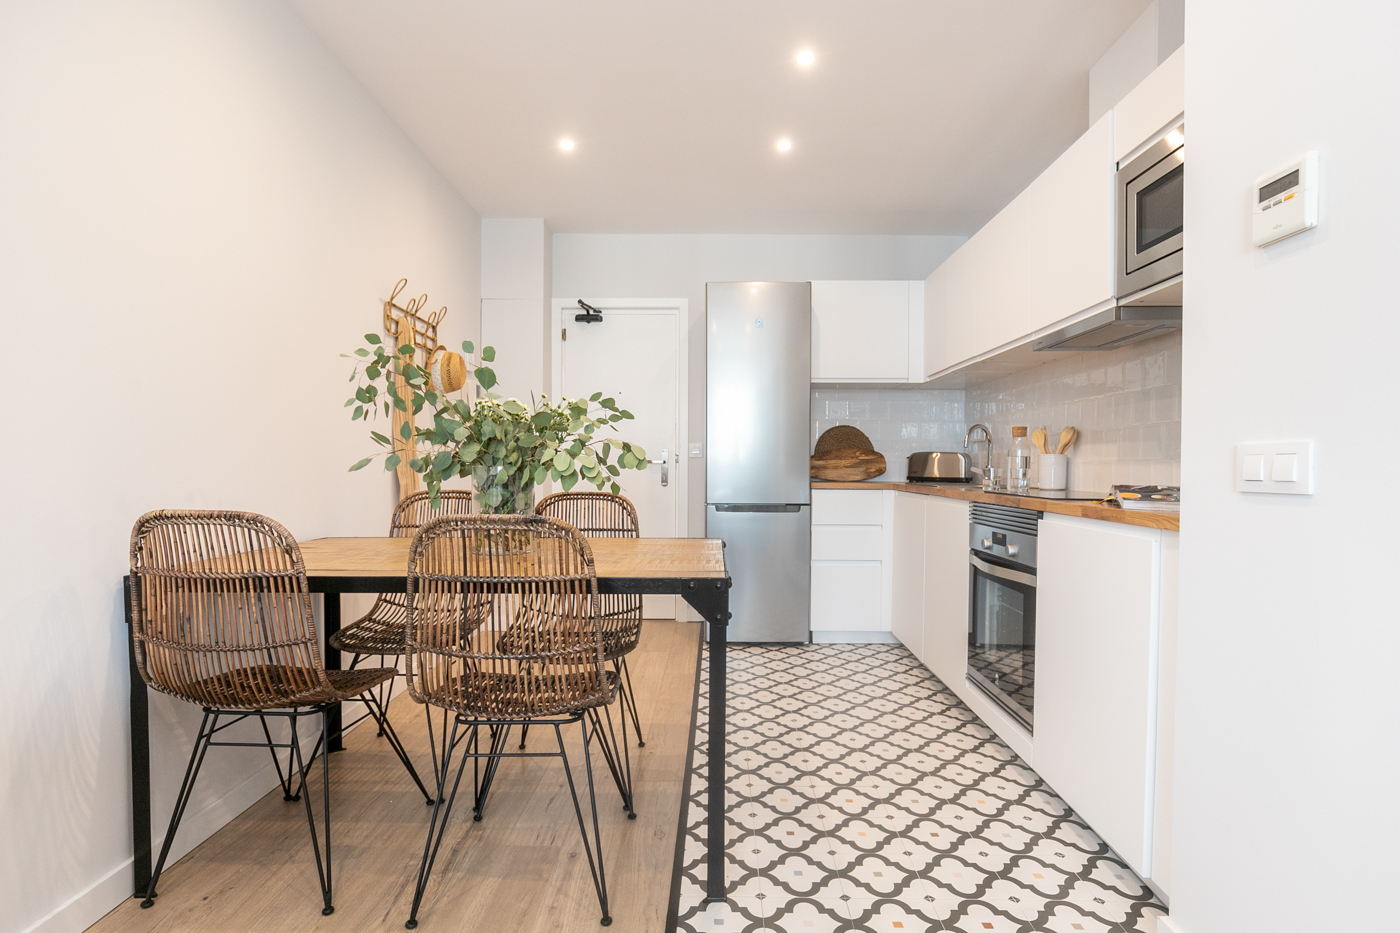 Apartment in Barcelona - eixample. 2 bedrooms. For sale: 425.000 €.